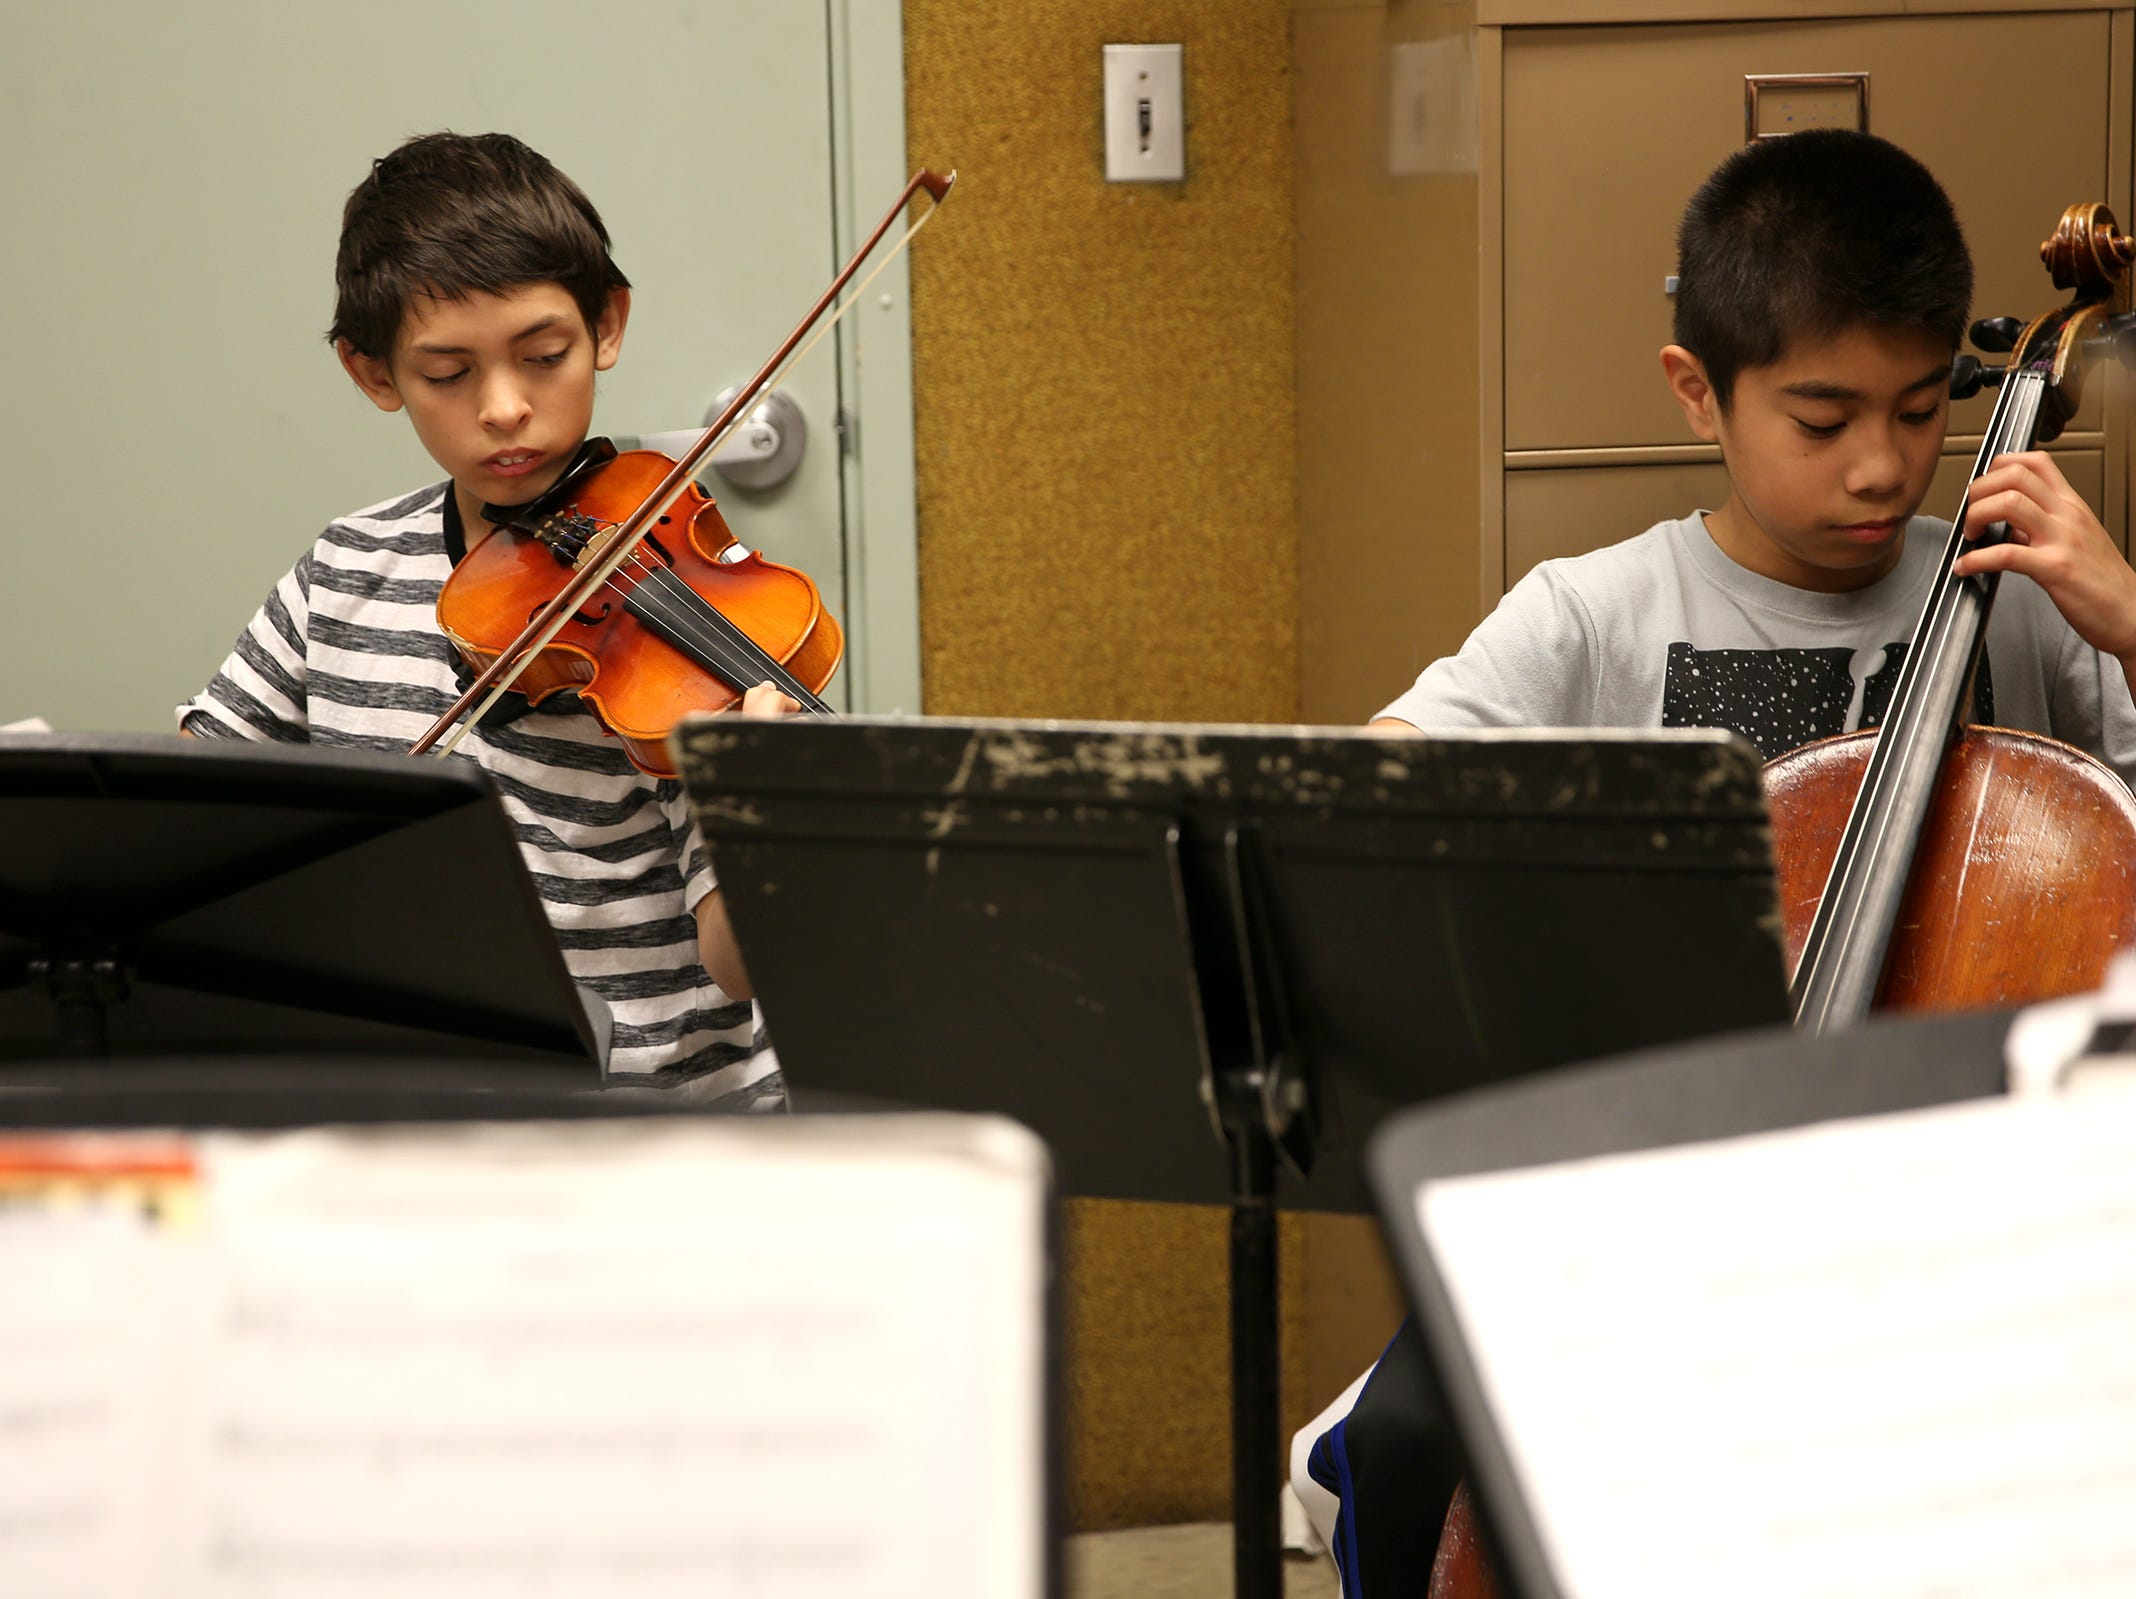 Seventh grade student Kaden Sherwood and sixth grade student Ivan Rodriguez participate through the Music Lessons Project, which offers private or small group lessons to students in Title I schools, at Waldo Middle School on April 19, 2019.